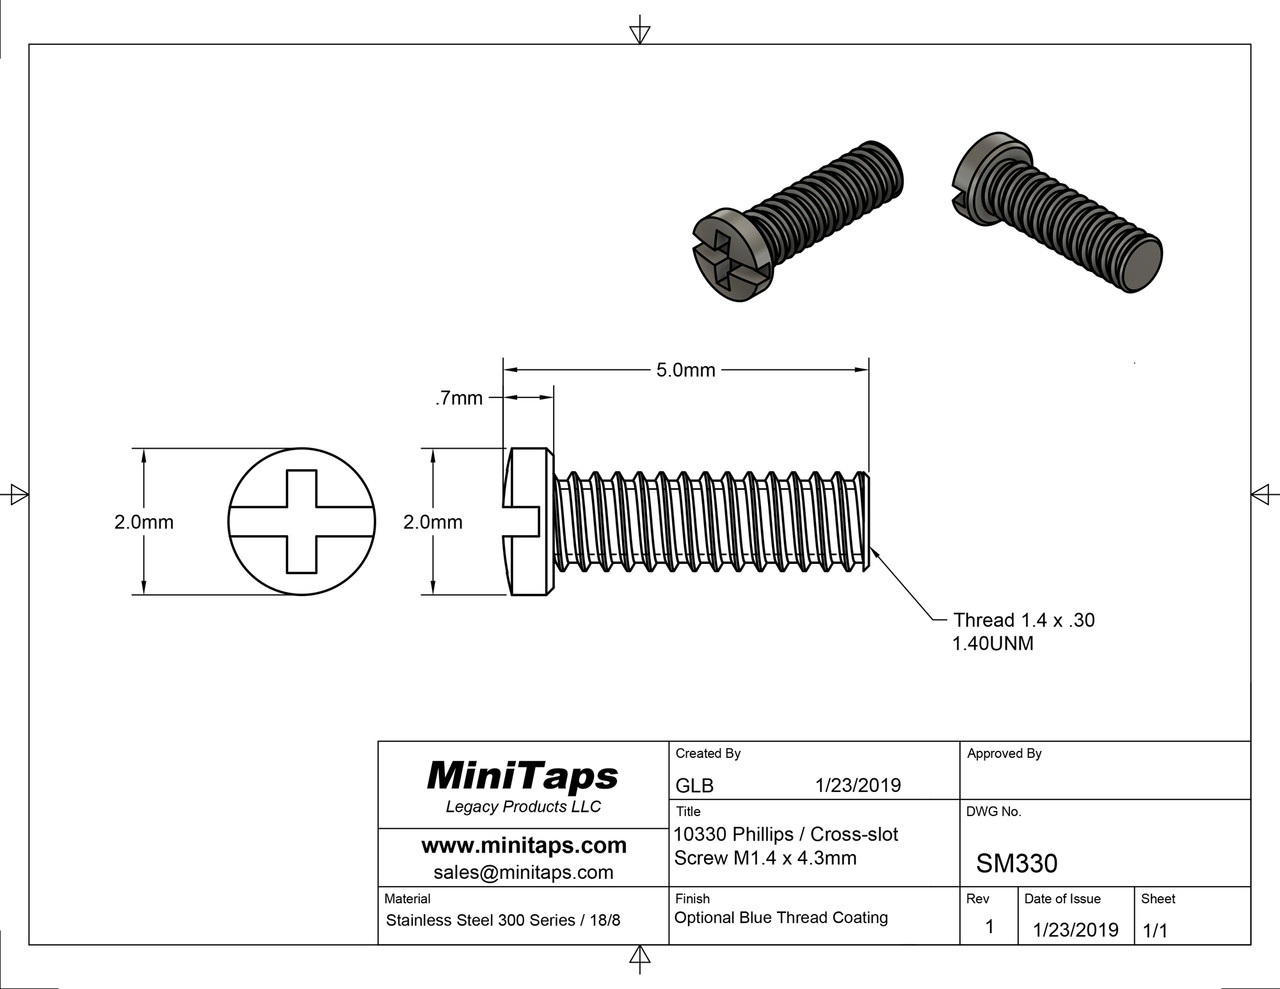 Machine Screw Pan Head with Philips X-Slot Drive  Thread M1.4, Pitch .30mm, Threaded Length 4.3mm, Overall Length 5.0mm, Head 2.0mm  Stainless Steel Colored Matte Black. Jewelry Grade Finish. Price is for 100 count package with bulk pricing available.  Please contact sales@minitaps.com for any additional questions or information.